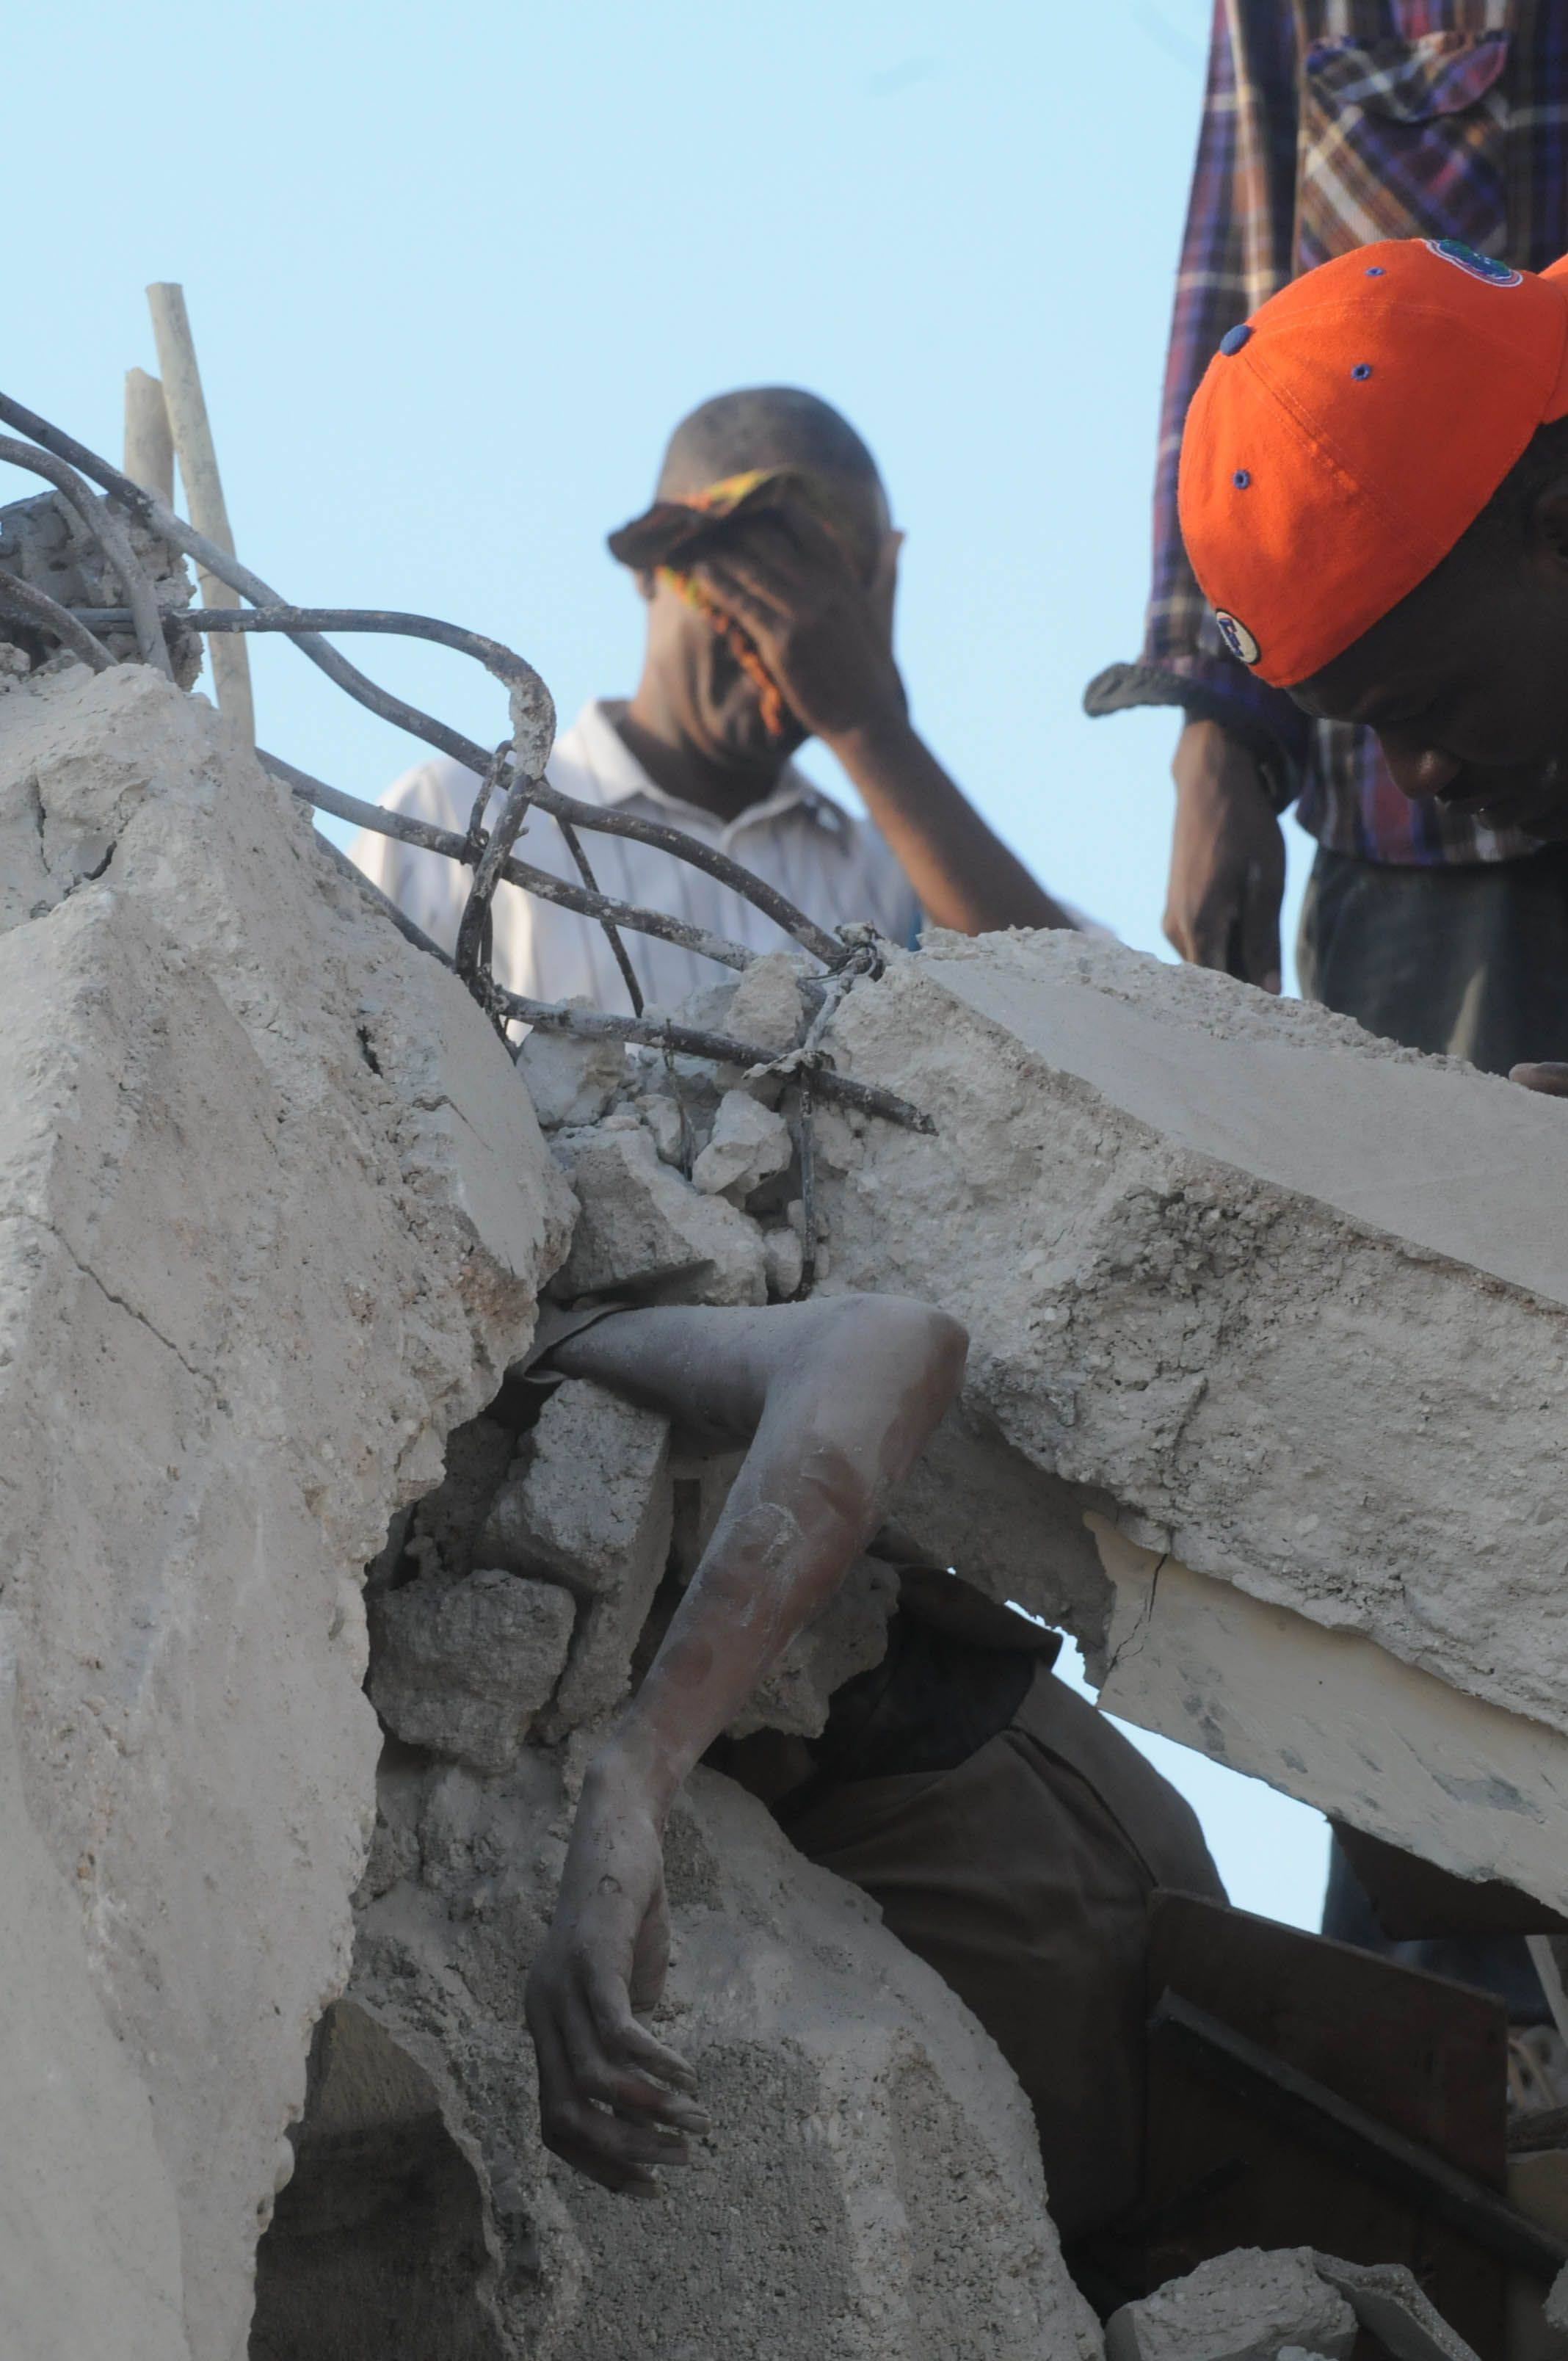 A man gestures behind a person trapped in the rubble of a collapsed building in Port-au-Prince Wednesday, Jan. 13, 2010.